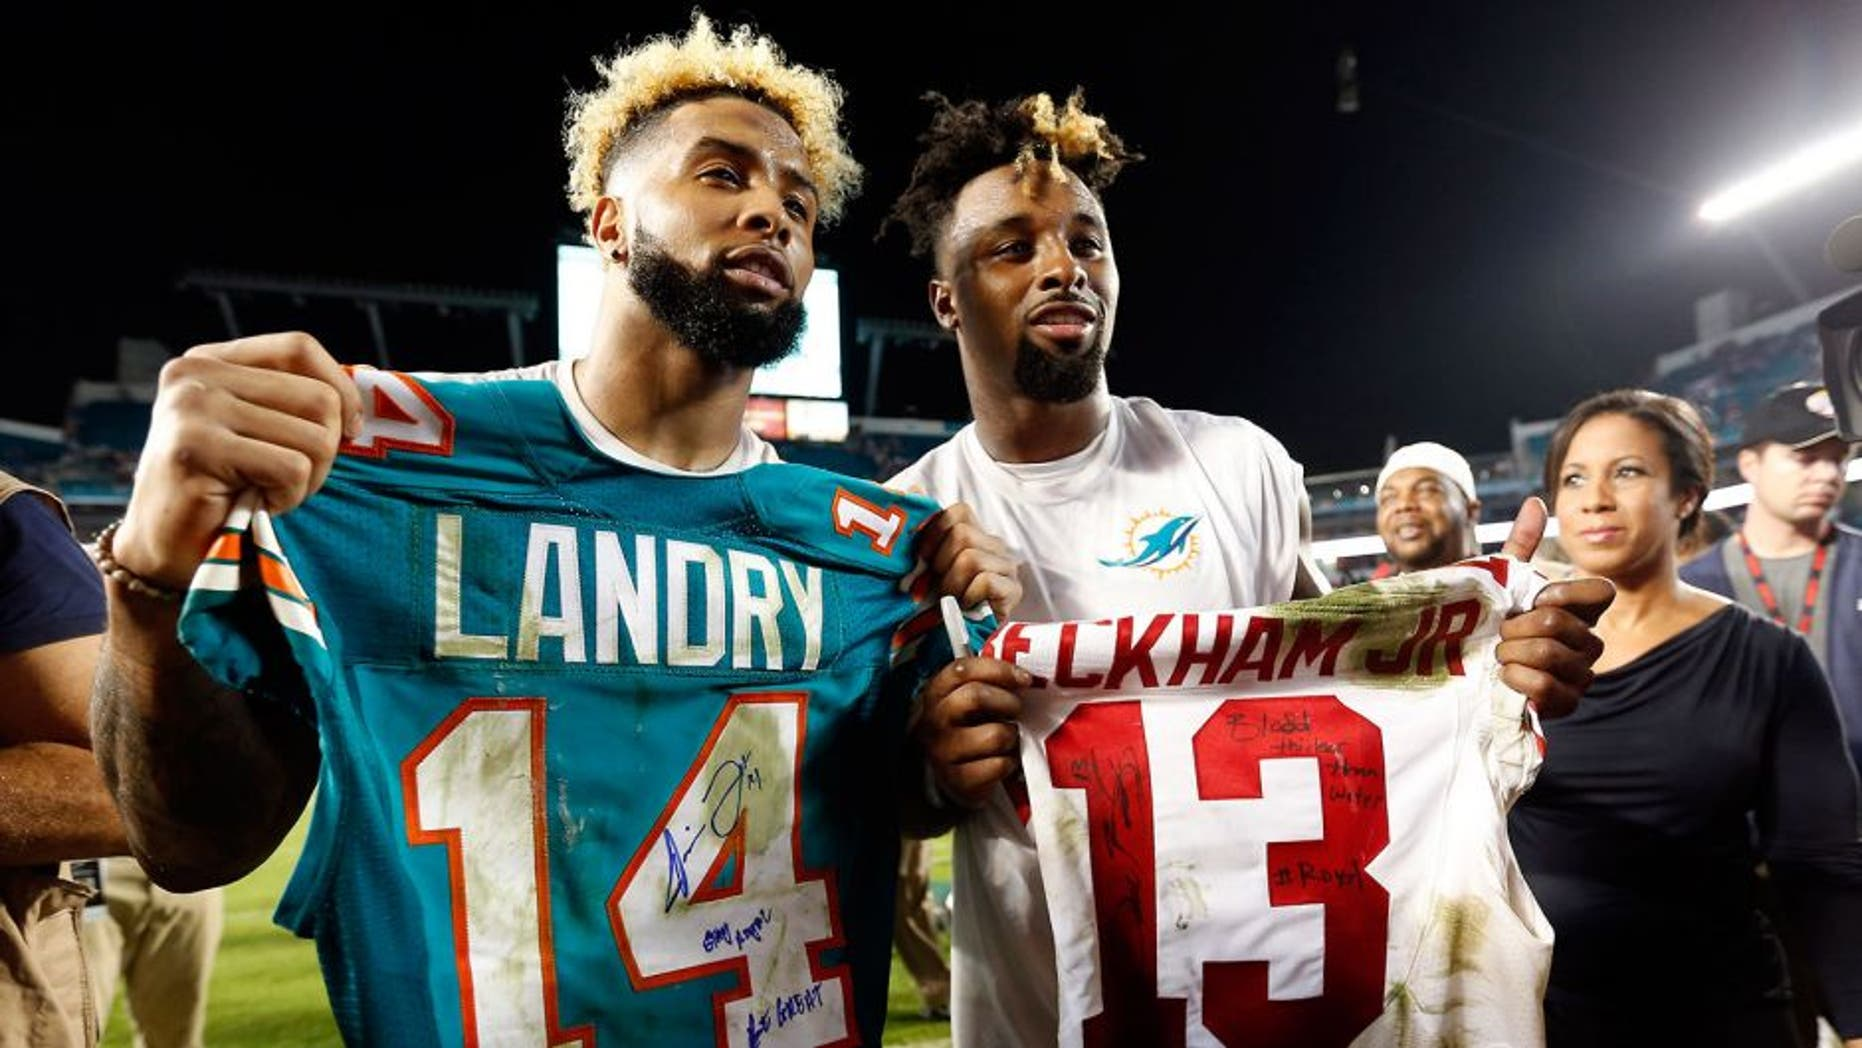 Dec 14, 2015; Miami Gardens, FL, USA; Miami Dolphins wide receiver Jarvis Landry (14) and New York Giants wide receiver Odell Beckham Jr. (13) both display their signed jersey's after their game at Sun Life Stadium. Mandatory Credit: Steve Mitchell-USA TODAY Sports